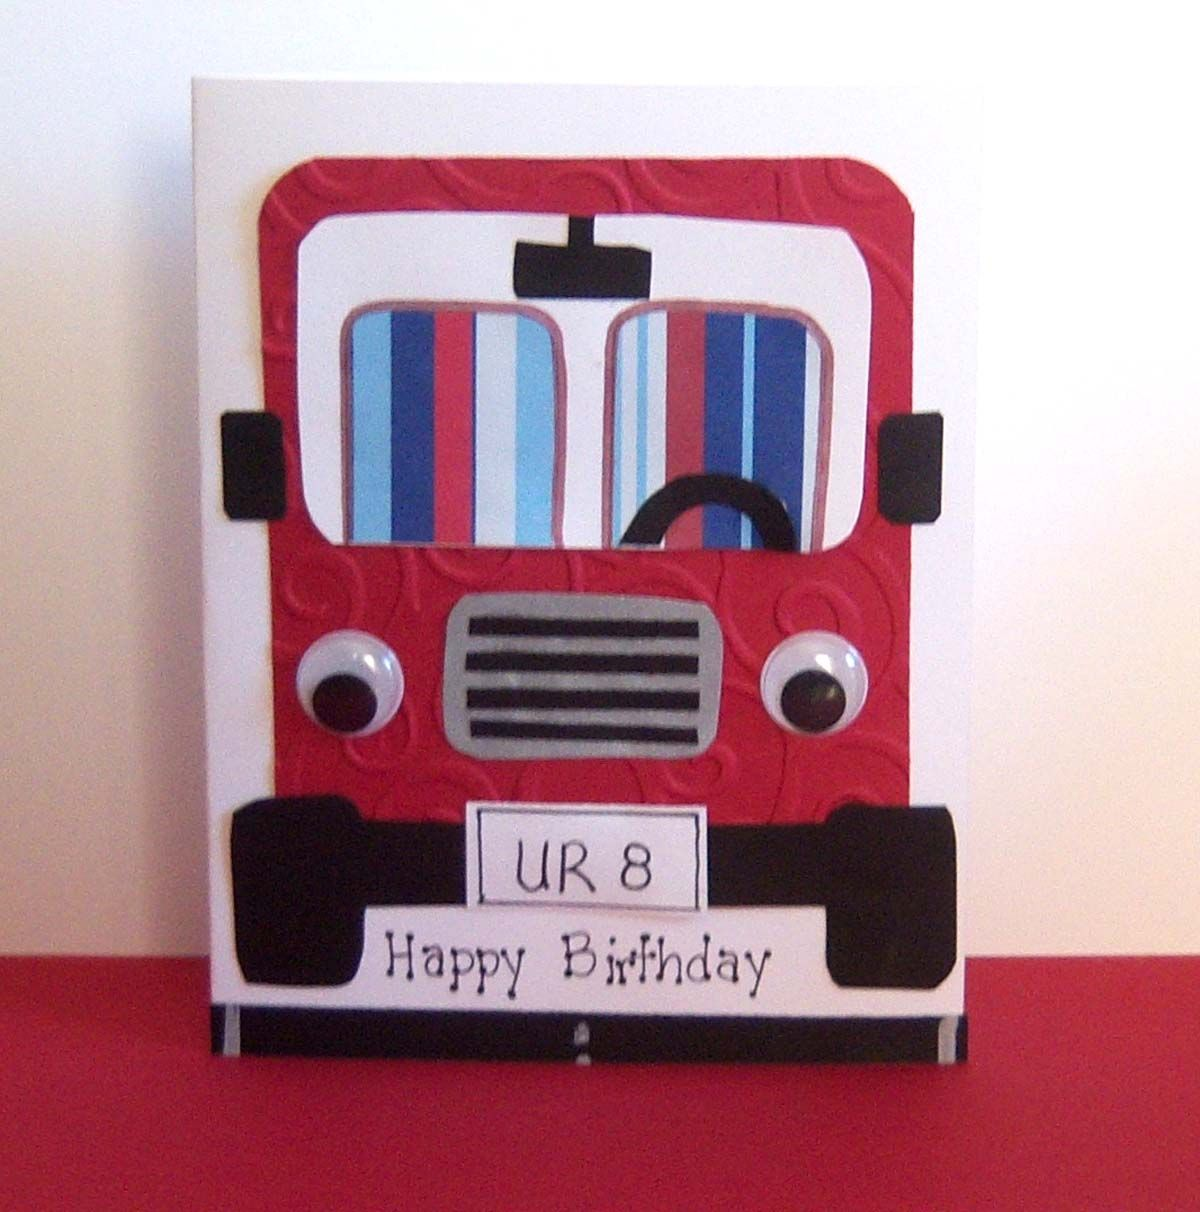 homemade birthday cards for boys – How to Make a Birthday Card for Kids